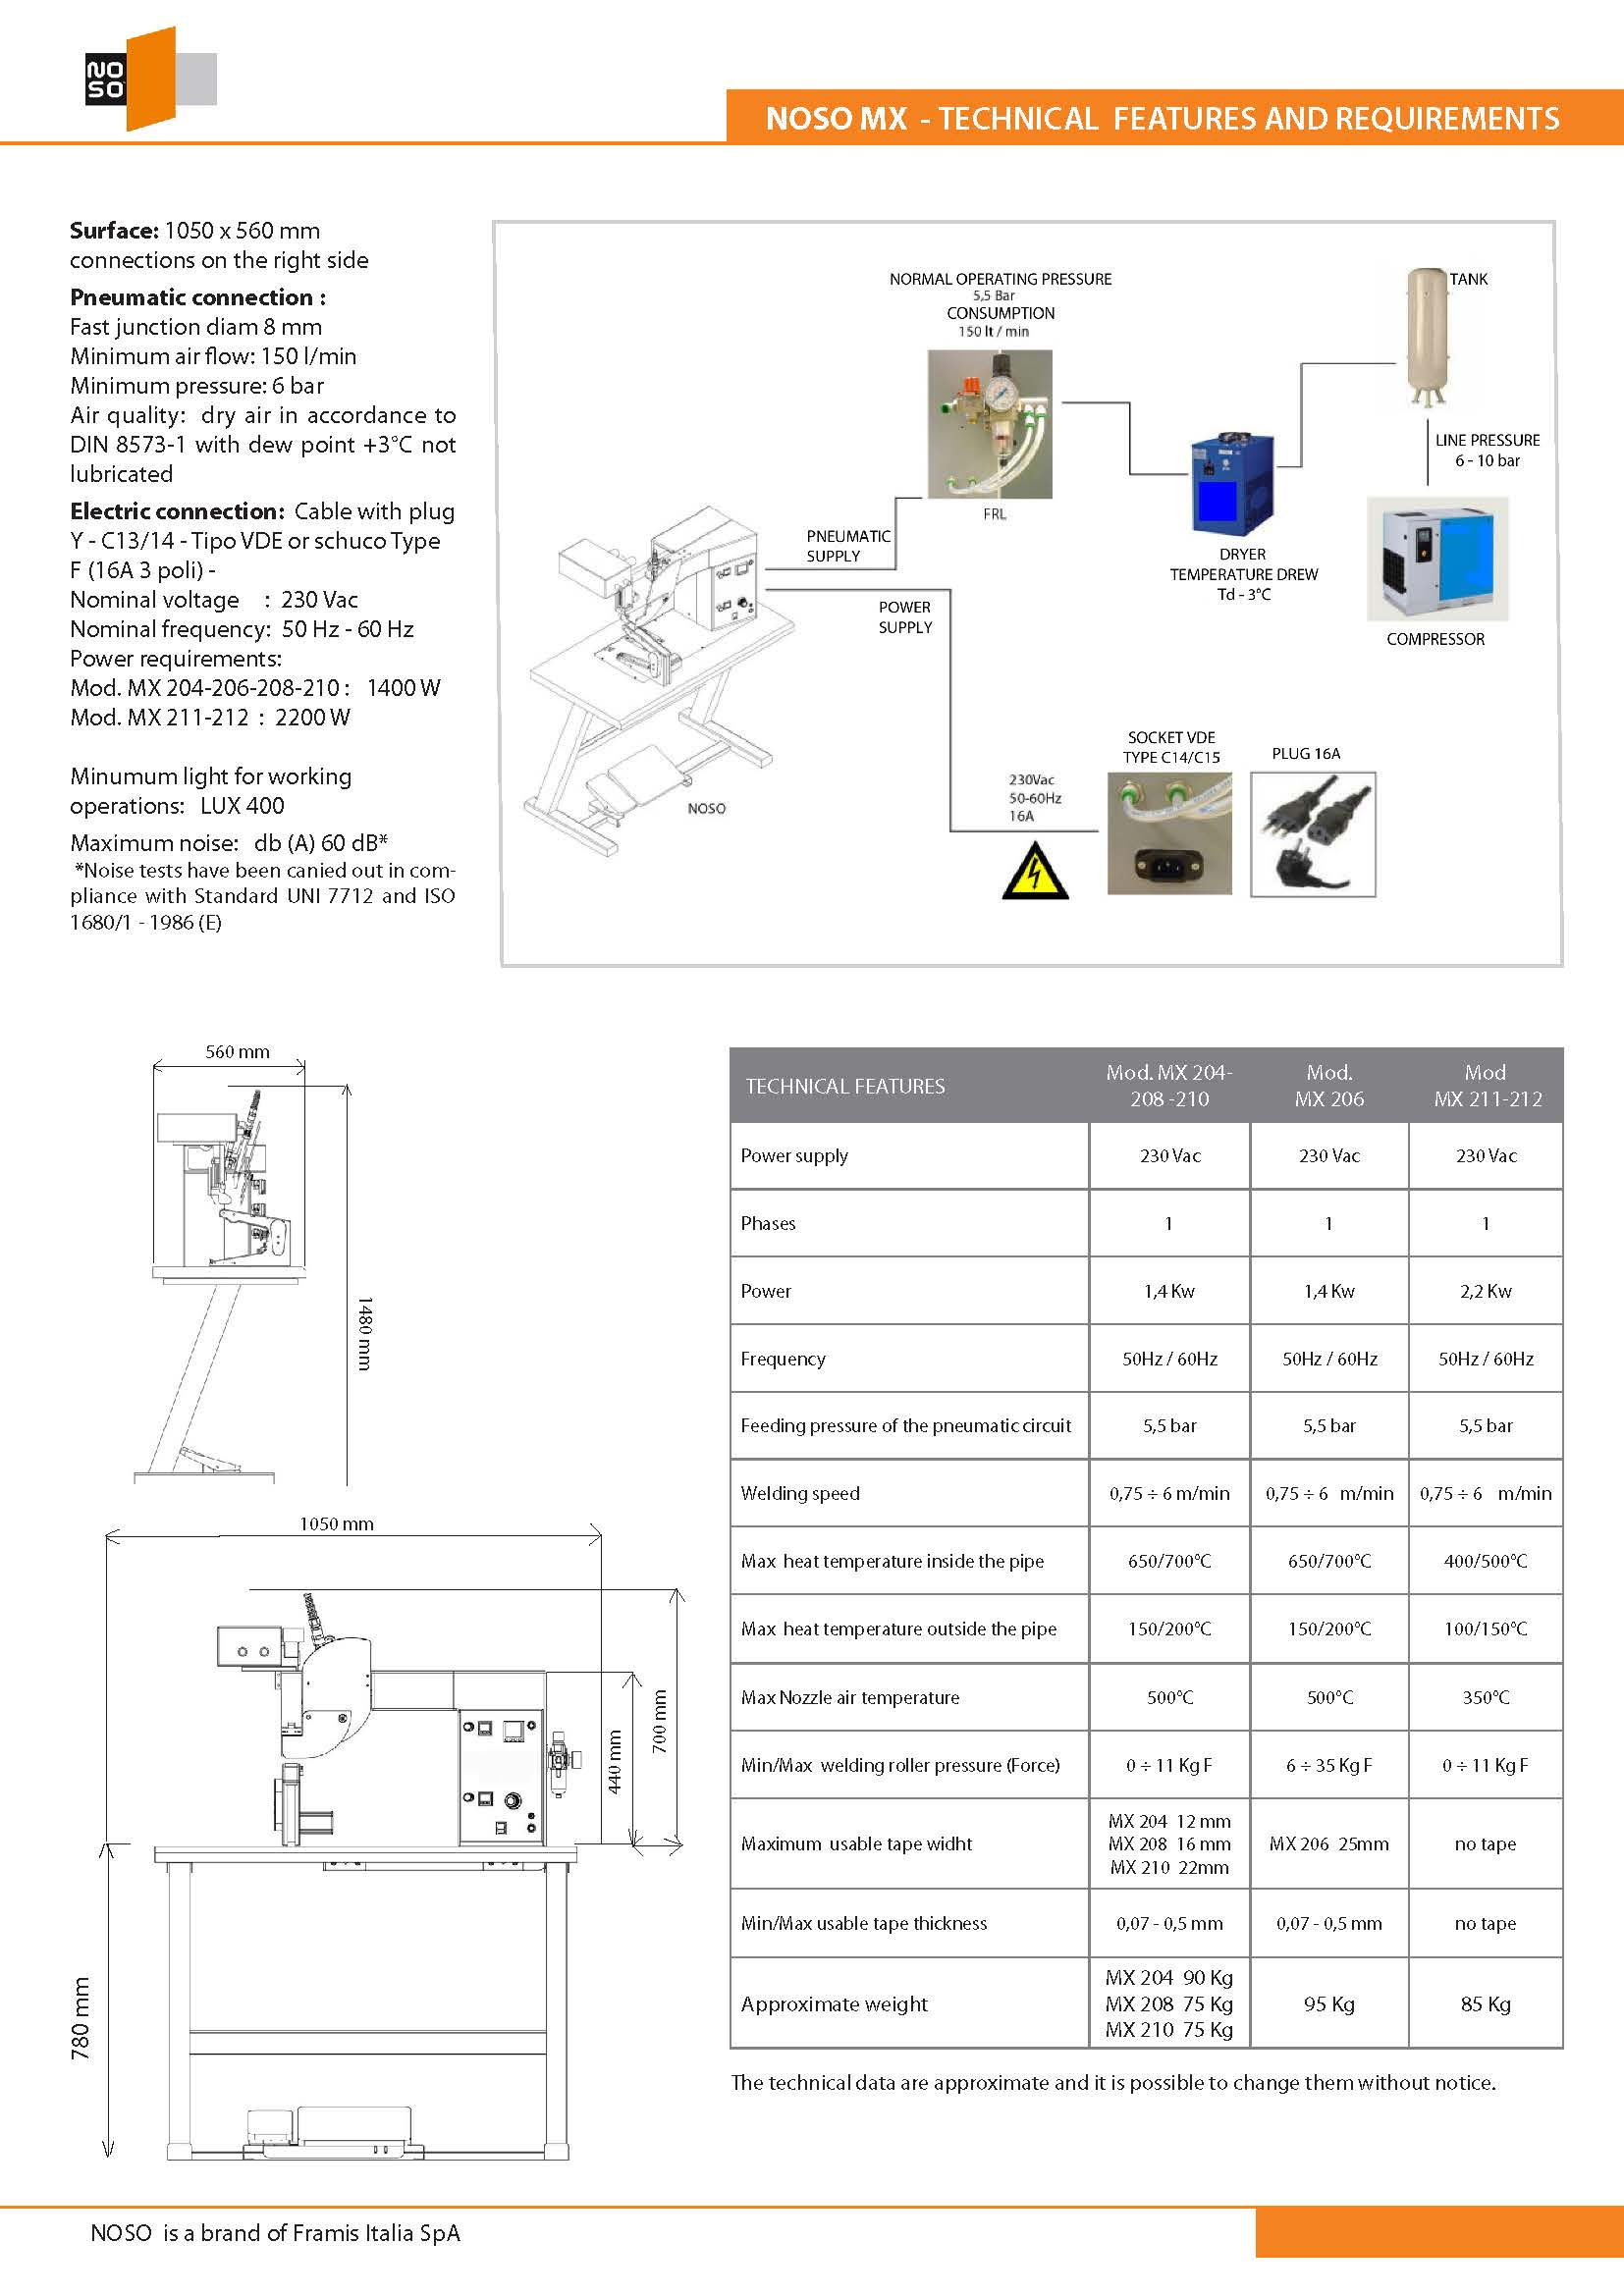 FRAMIS NOSO MACHINERY TECHNICAL REQUIREMENTS